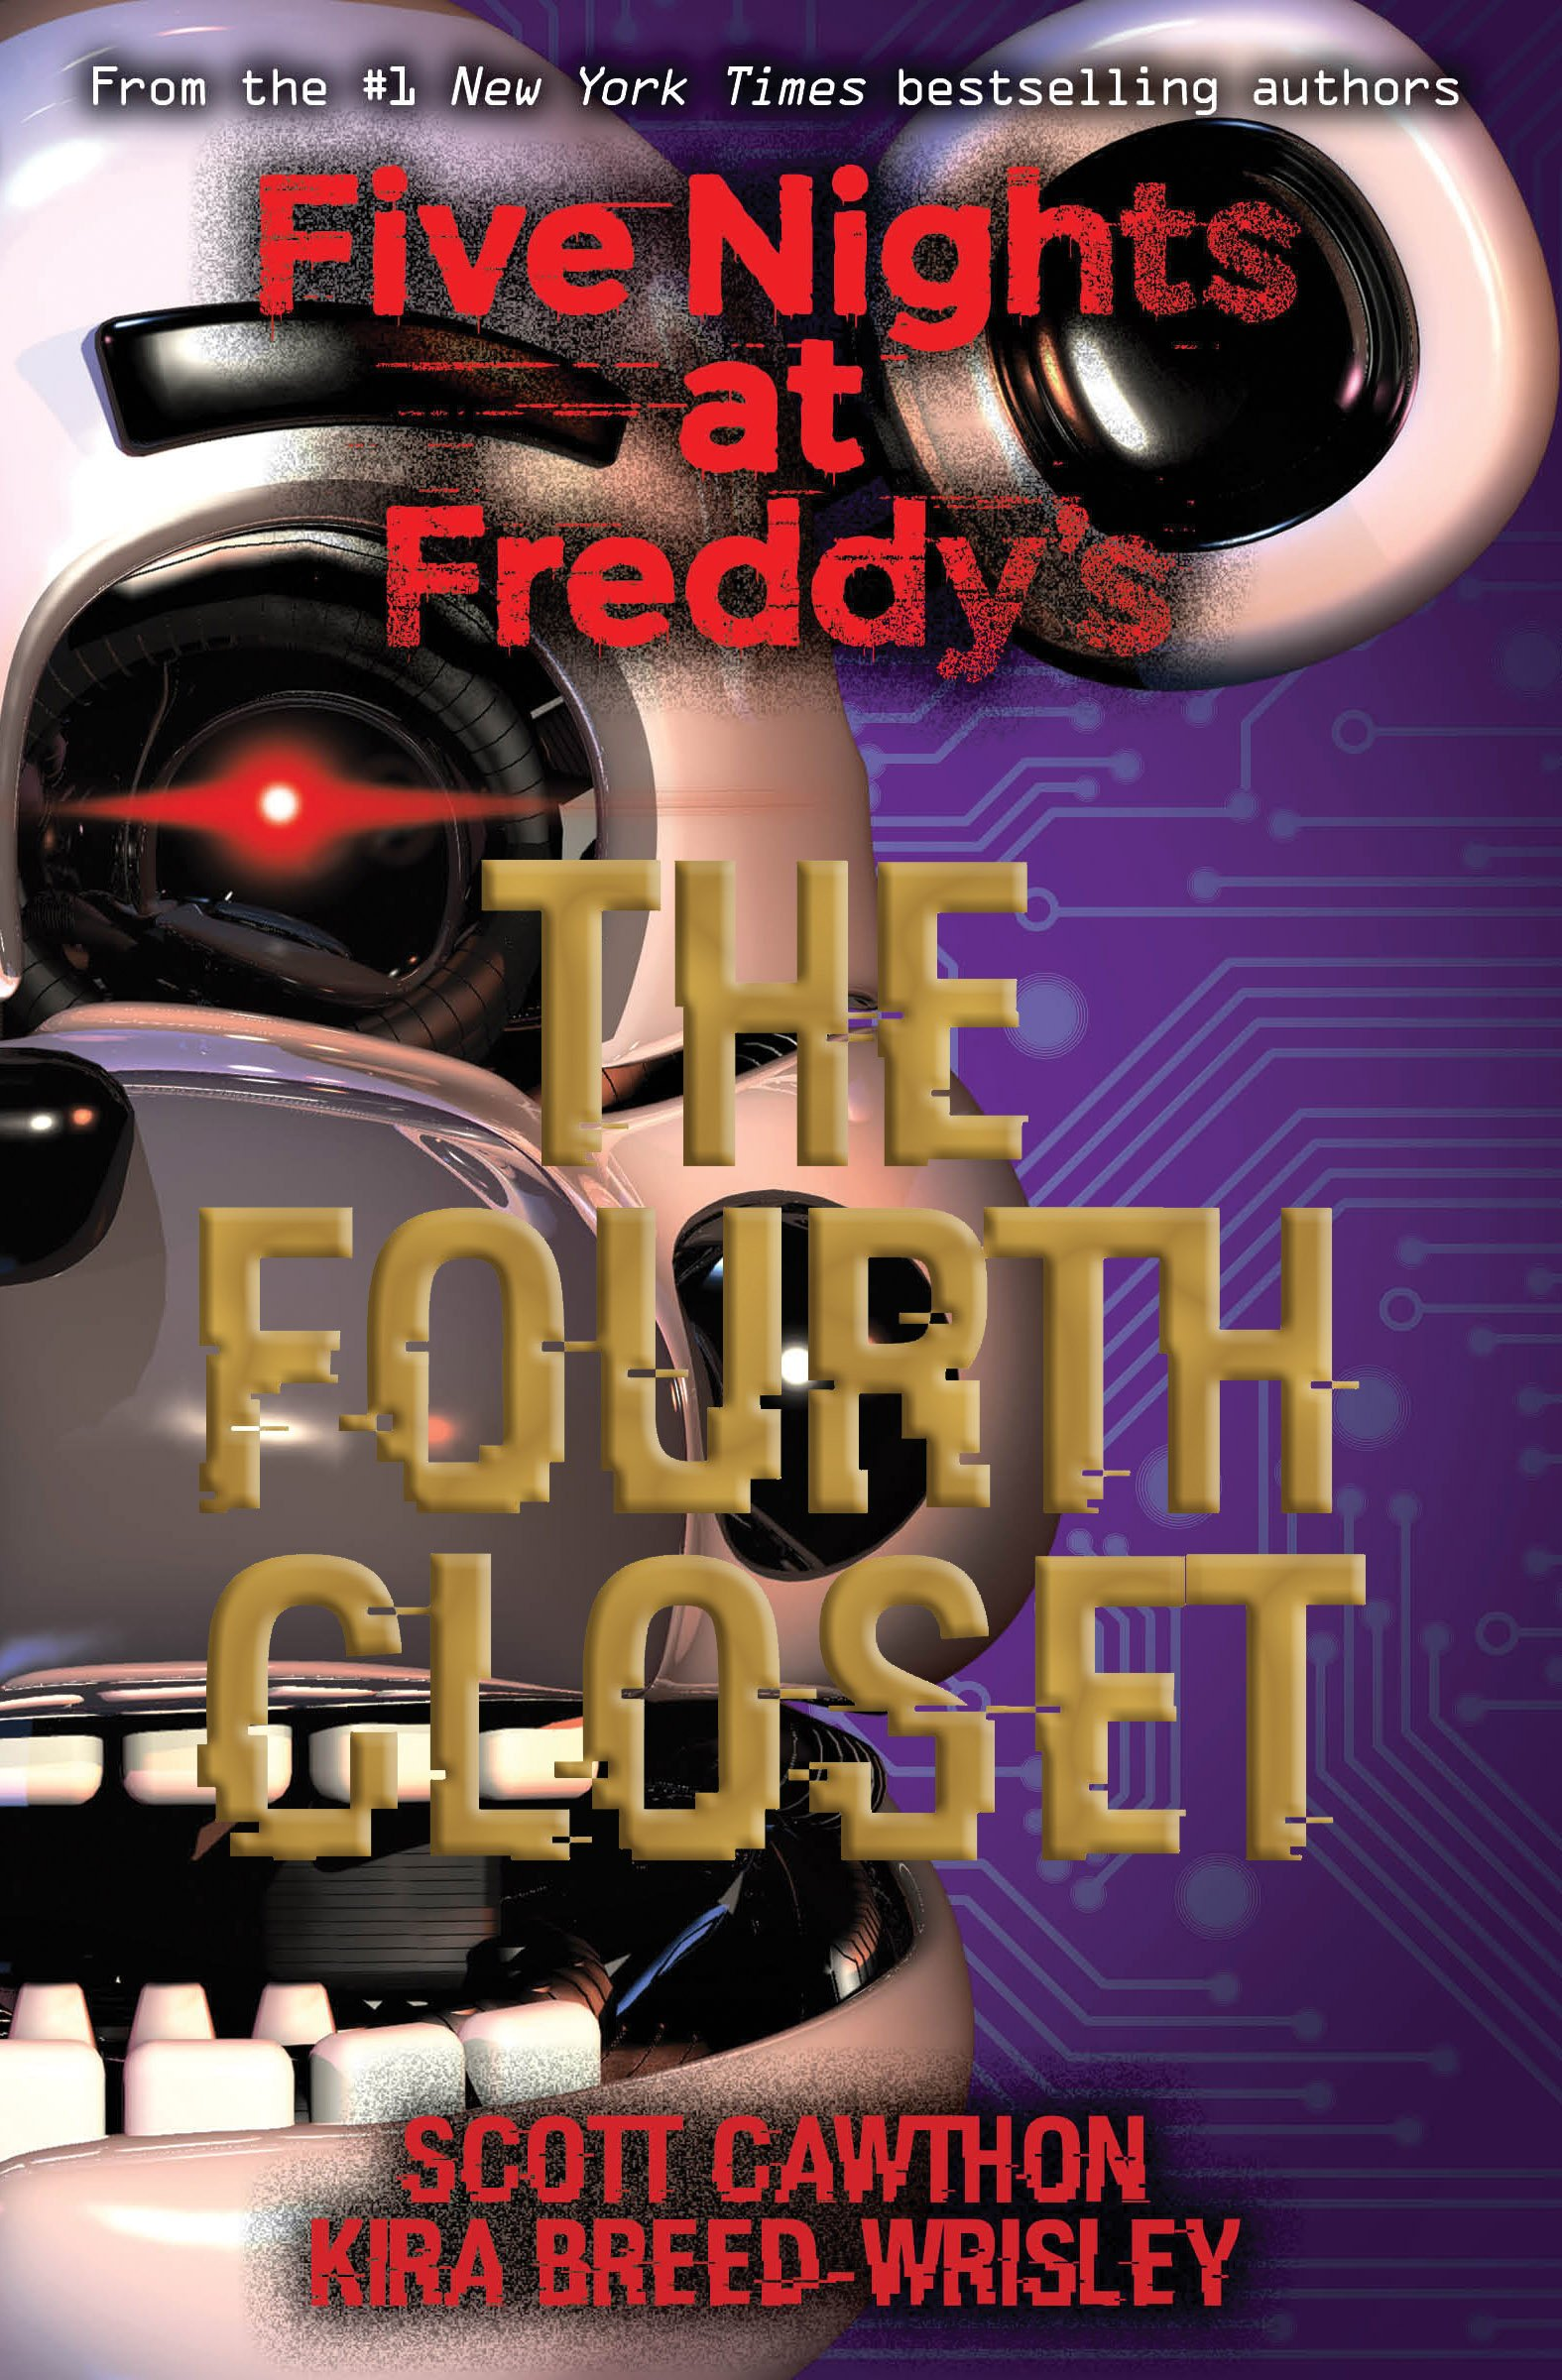 FNAF: The Fourth Closet